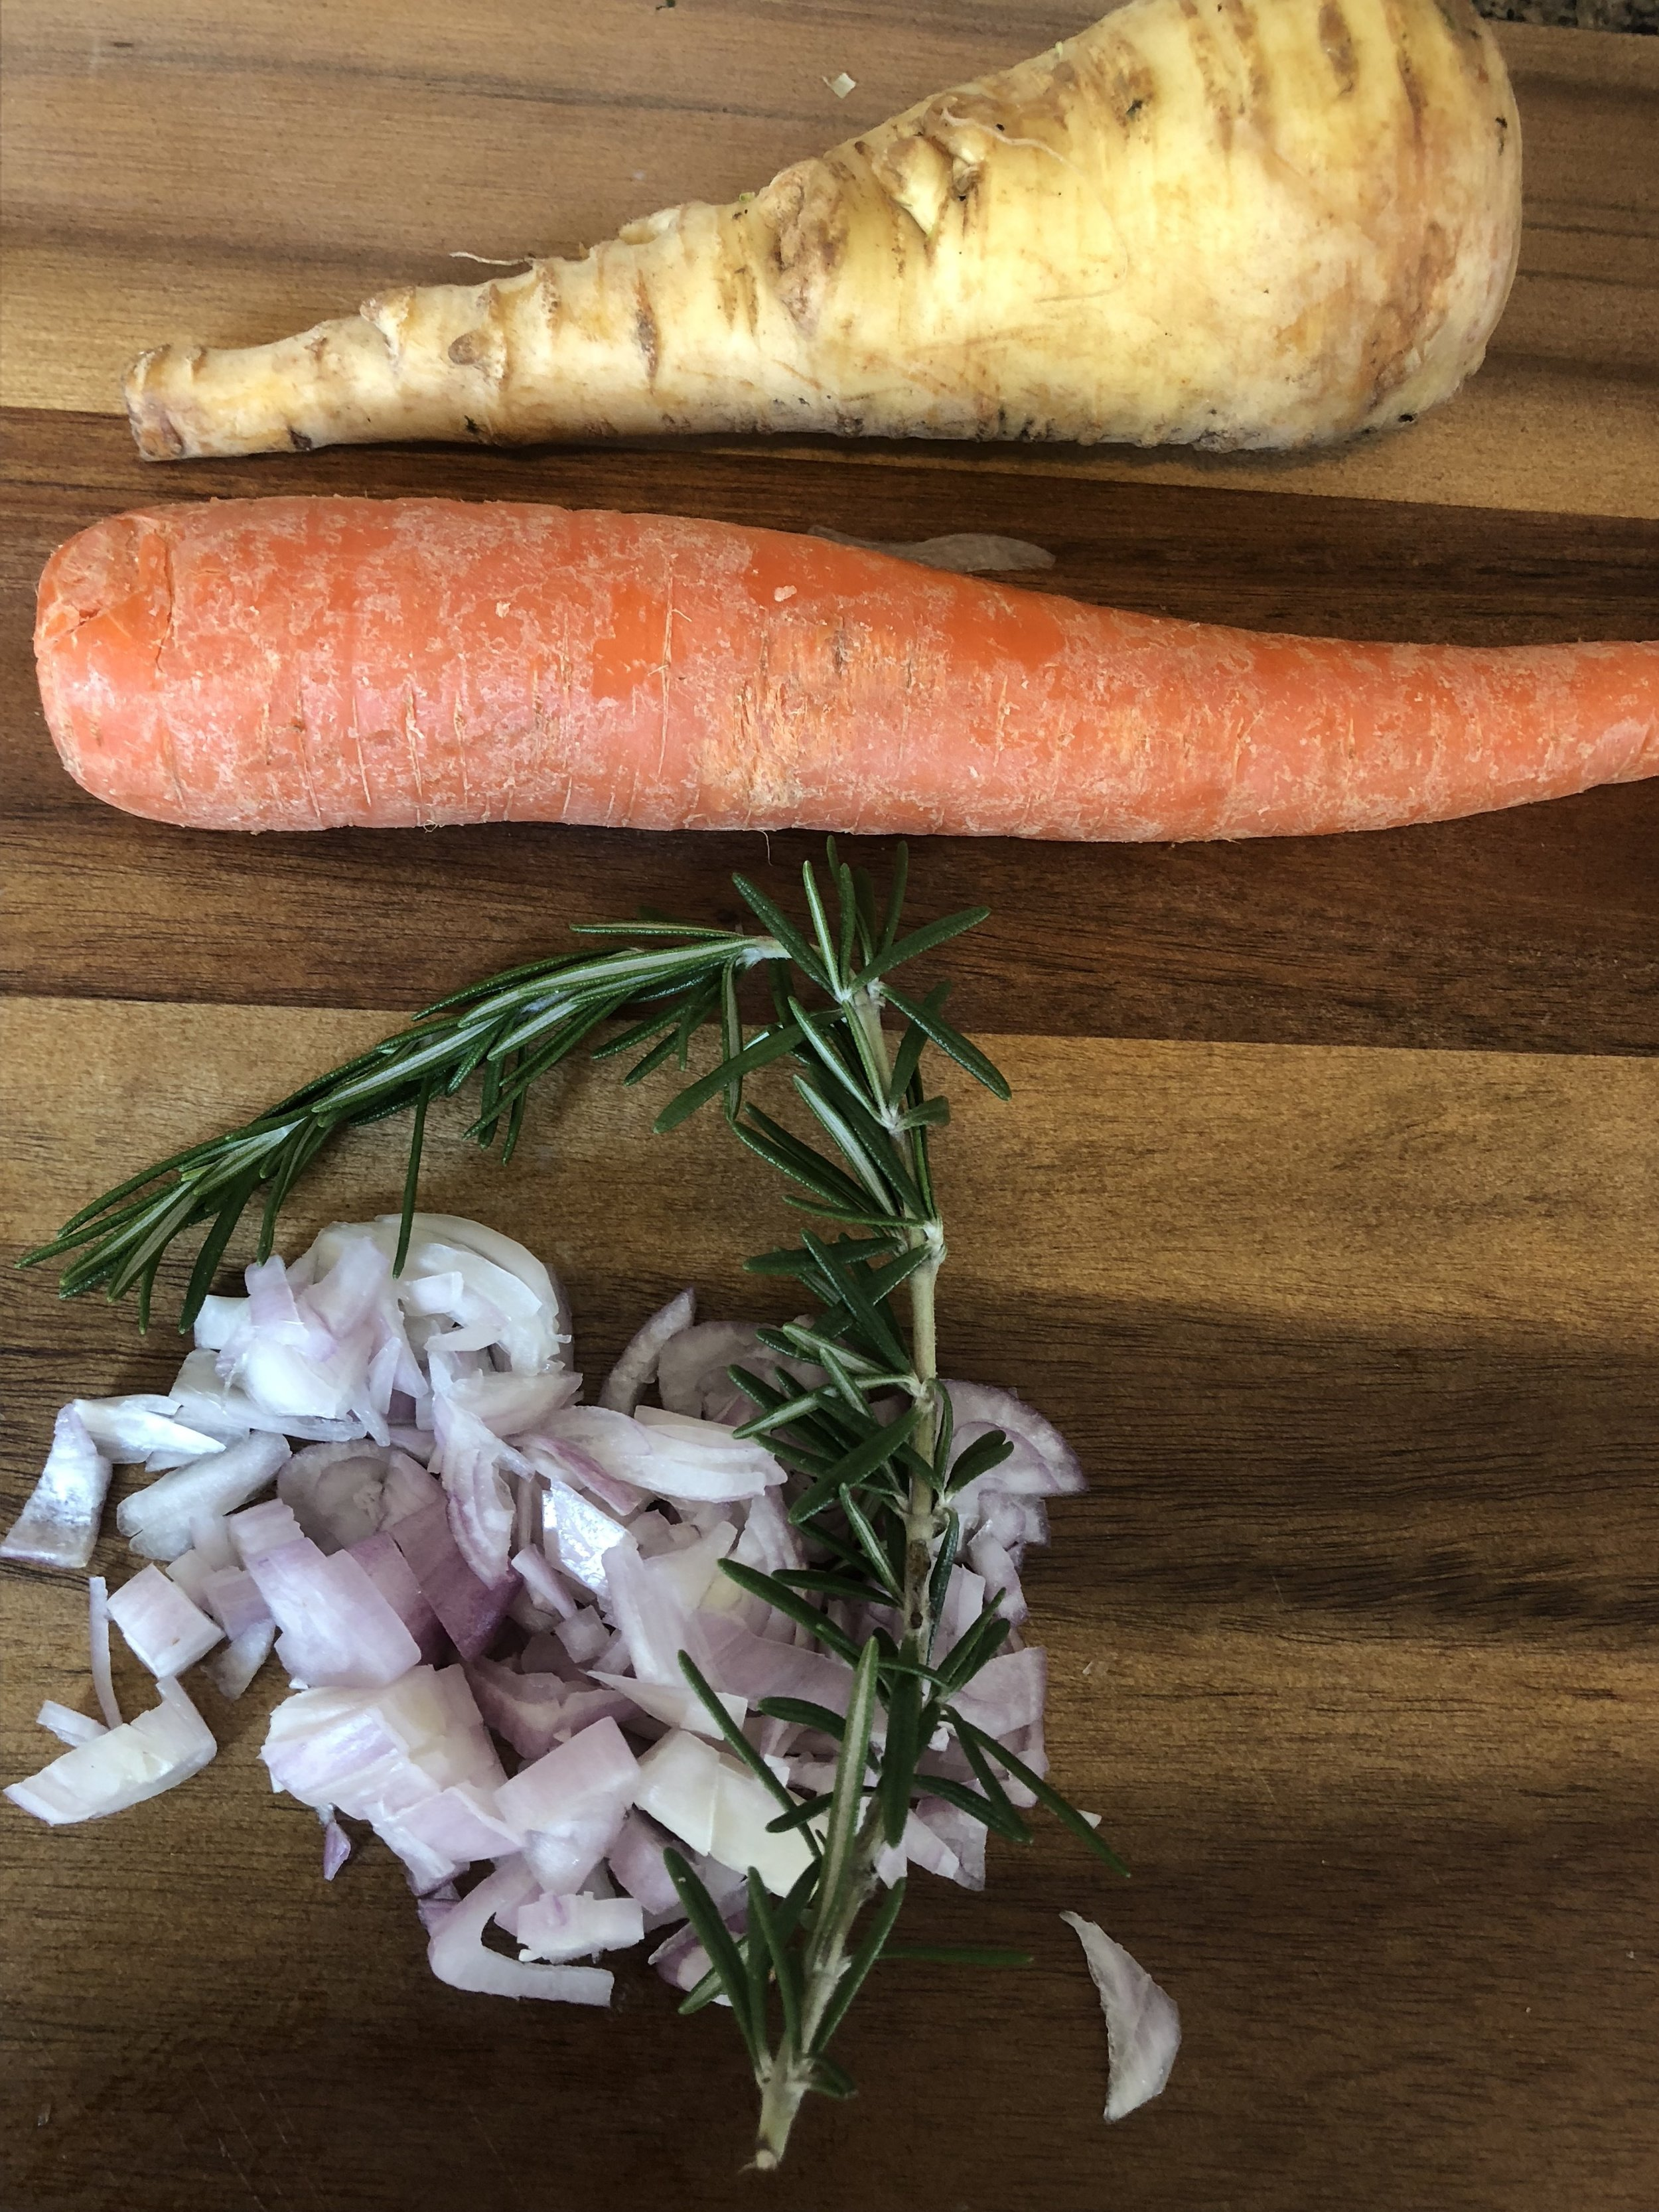 Dice your onions and shallots. Add 2 tsp of butter or olive oil to the bottom of your stockpot and then add onions and garlic, cooking until clear and aromatic. Then add the reserved chicken stock, coined carrots, cleaned and coined parsnips, another sprig of rosemary and chicken. Turn on medium heat and cook to complete integration. Cook the orzo in a medium saucepan according to directions on the box, until just under al dente. Add the nearly cooked orzo to the cooking soup and leave on heat for 5-13 minutes more to allow for it to cook thoroughly in the soup broth. Remove the sprig from the soup and serve got and smiling...Flavanoids, what what...